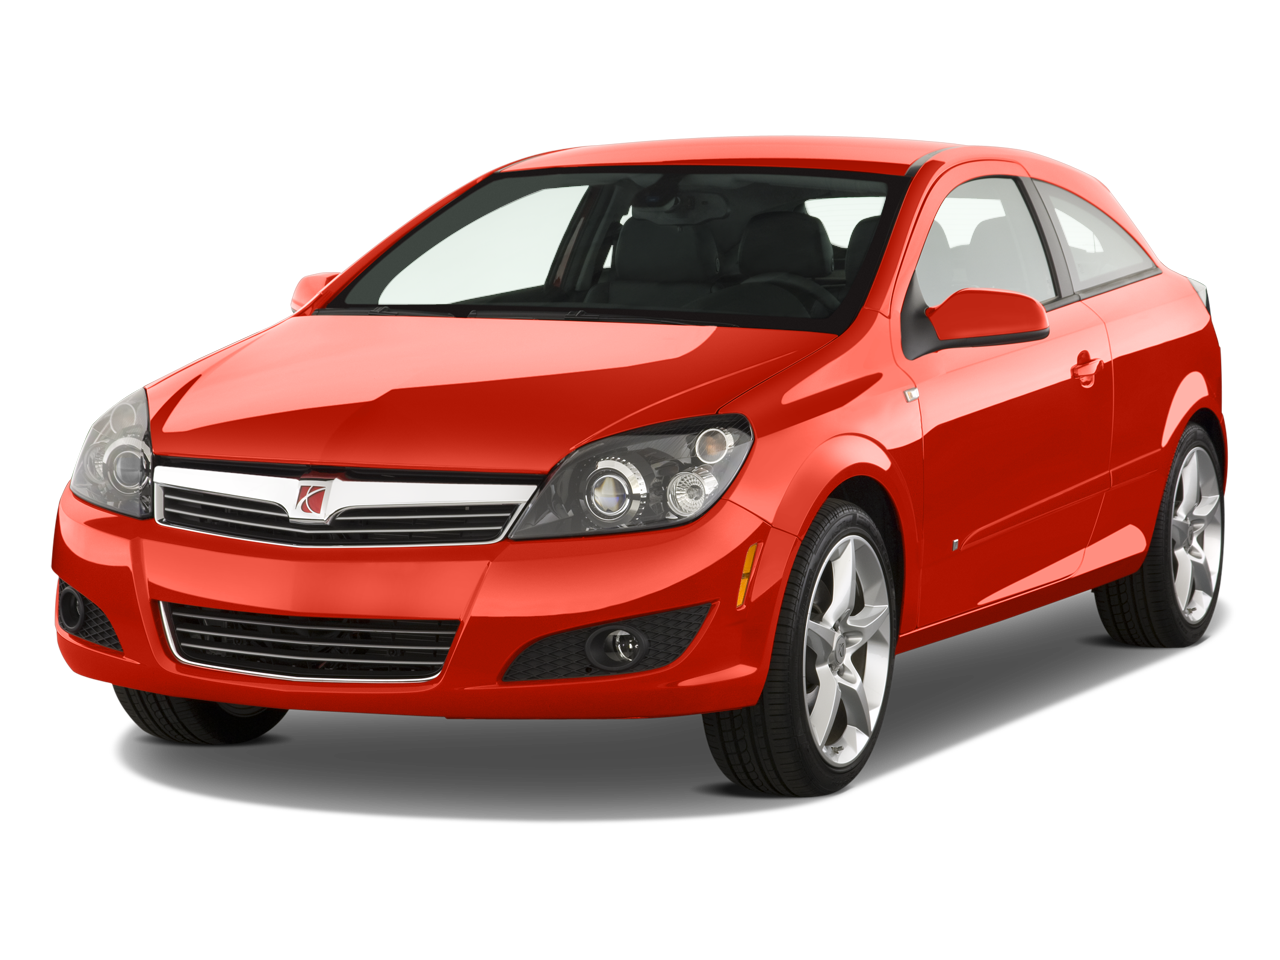 2008 saturn astra latest news features and reviews automobile magazine. Black Bedroom Furniture Sets. Home Design Ideas